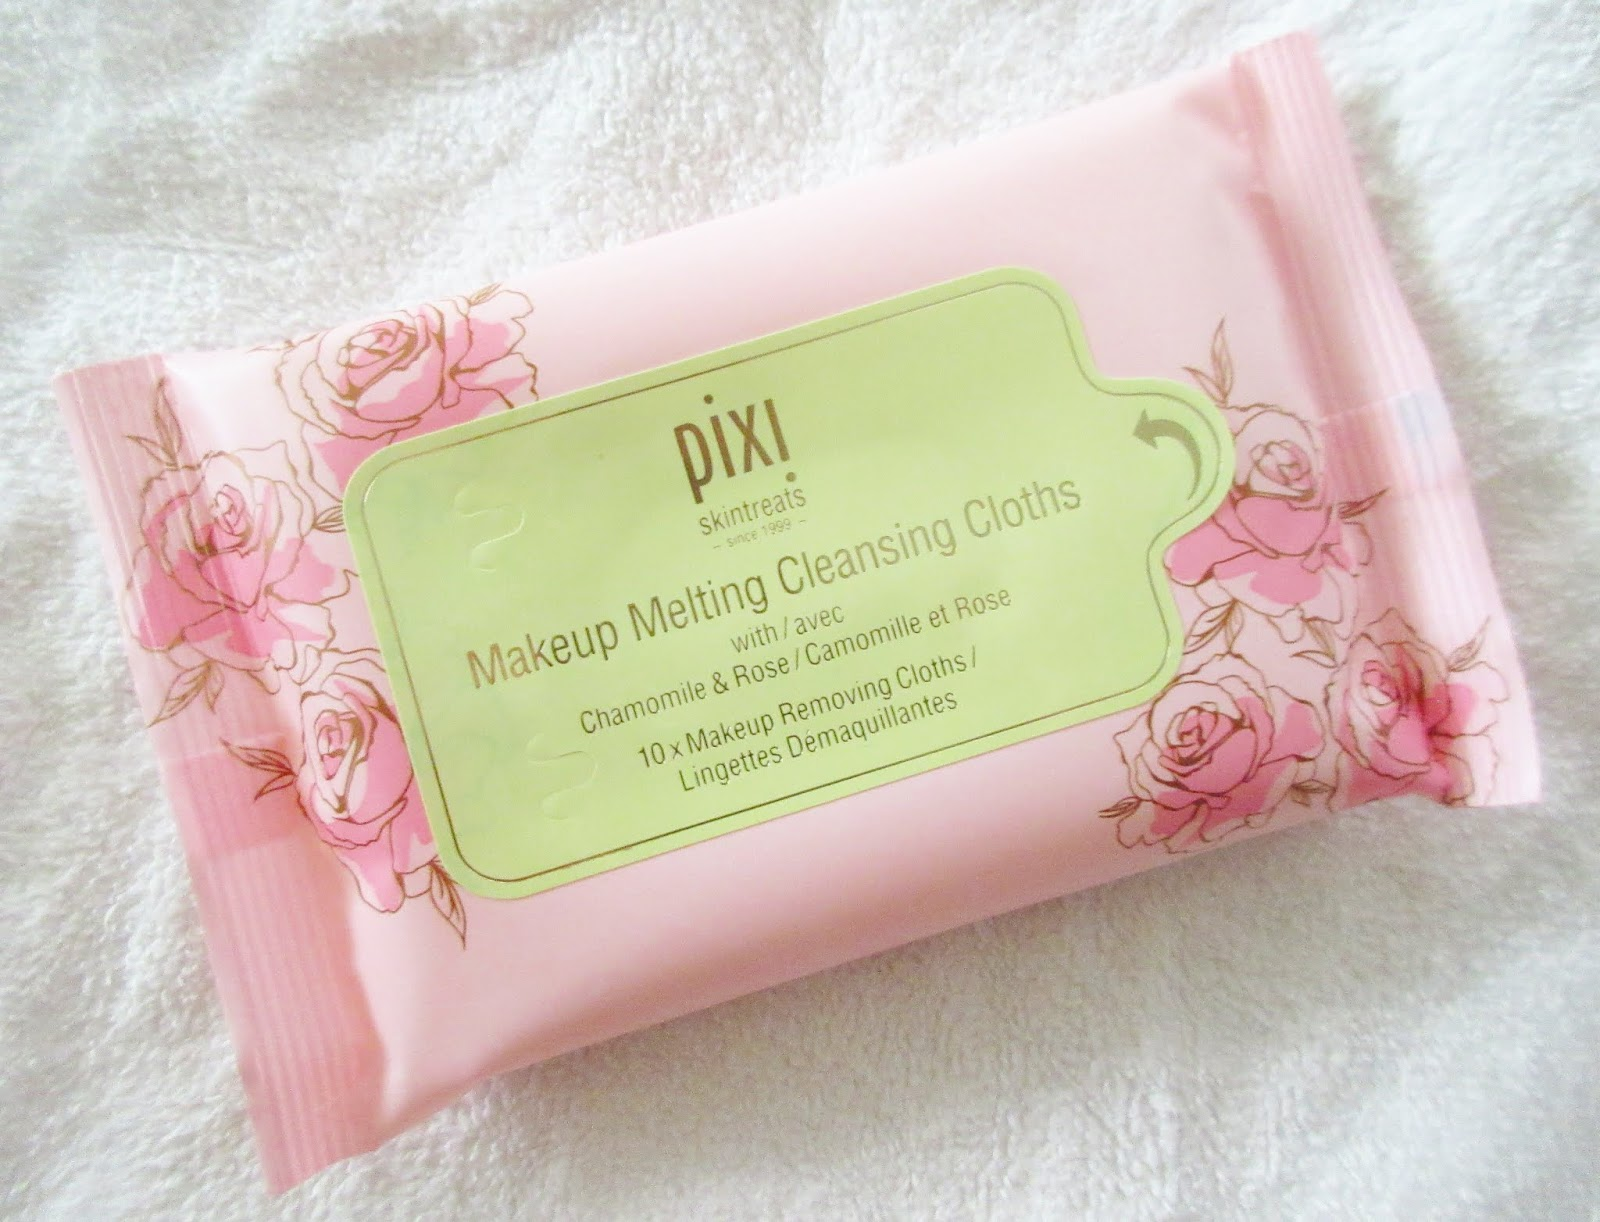 Pixi Makeup Melting Cleansing Cloths Review